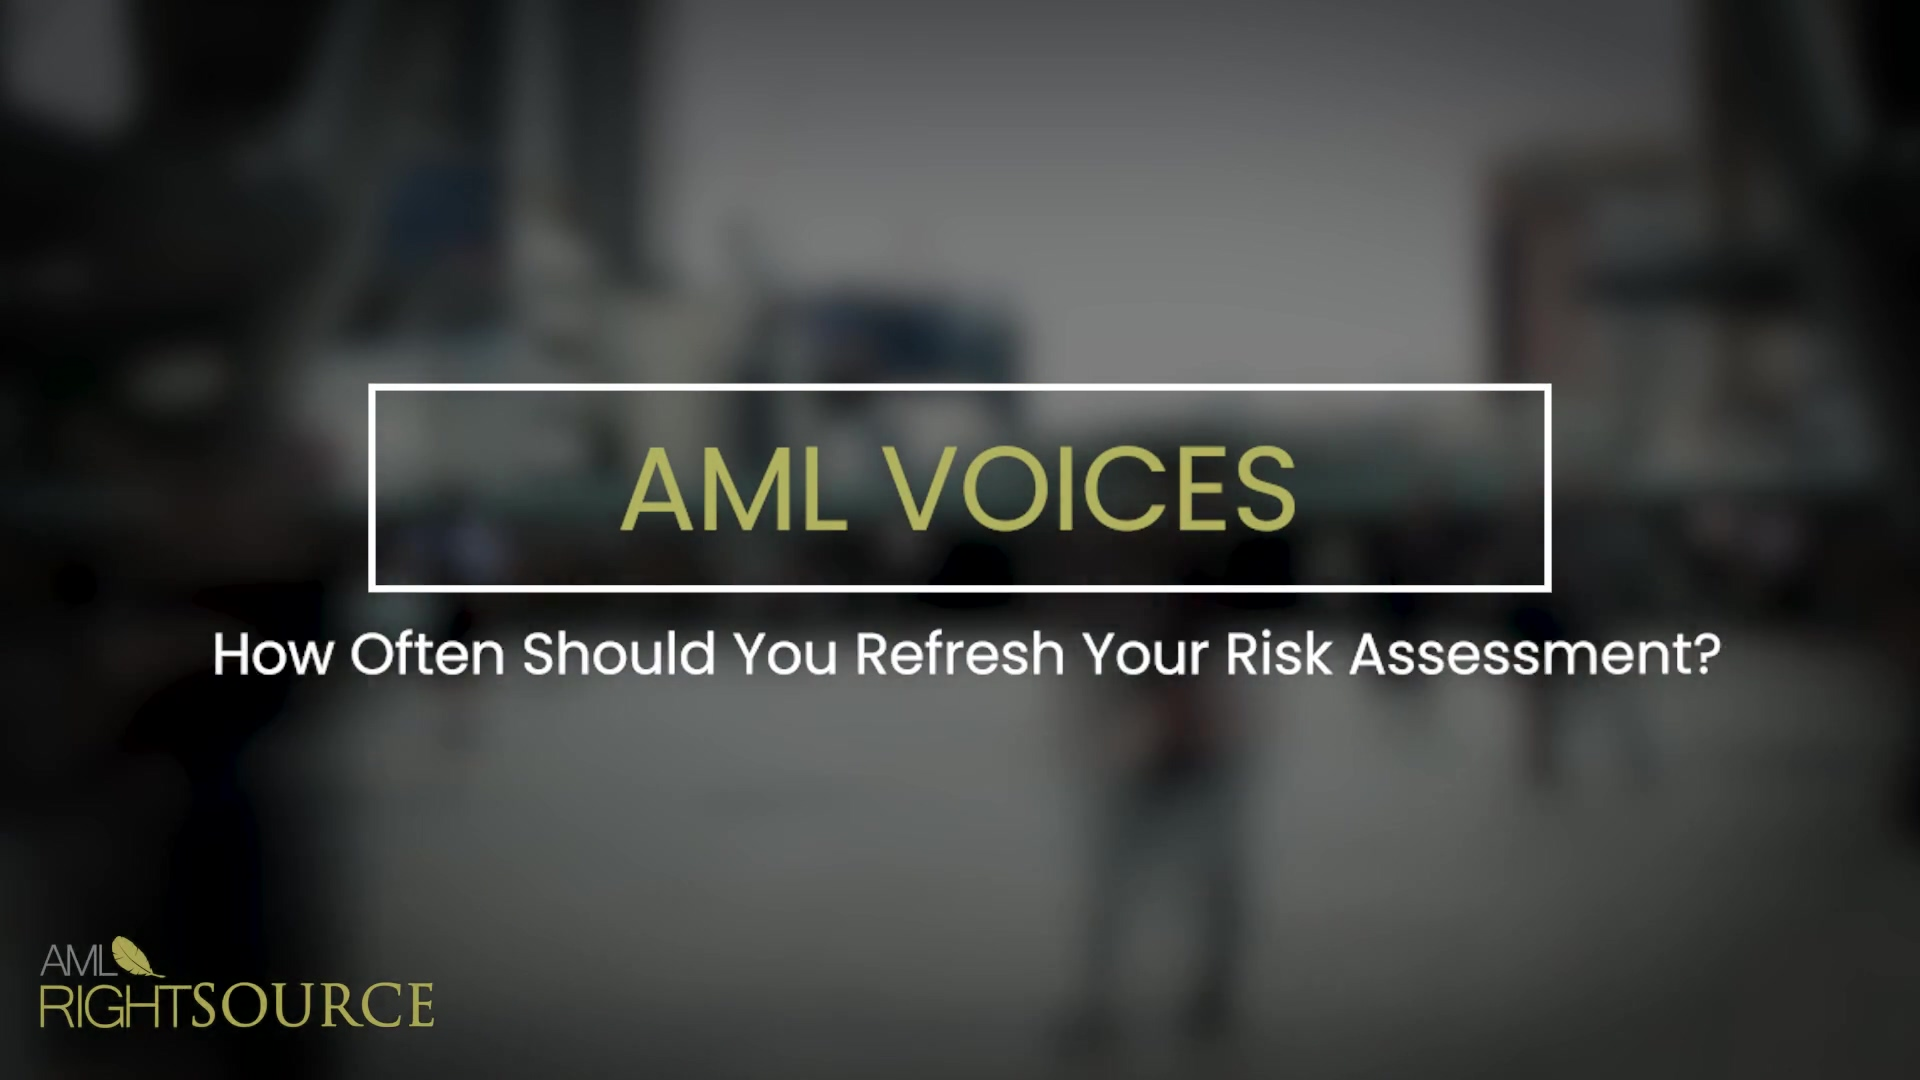 How Often Should You Refresh Your Risk Assessment